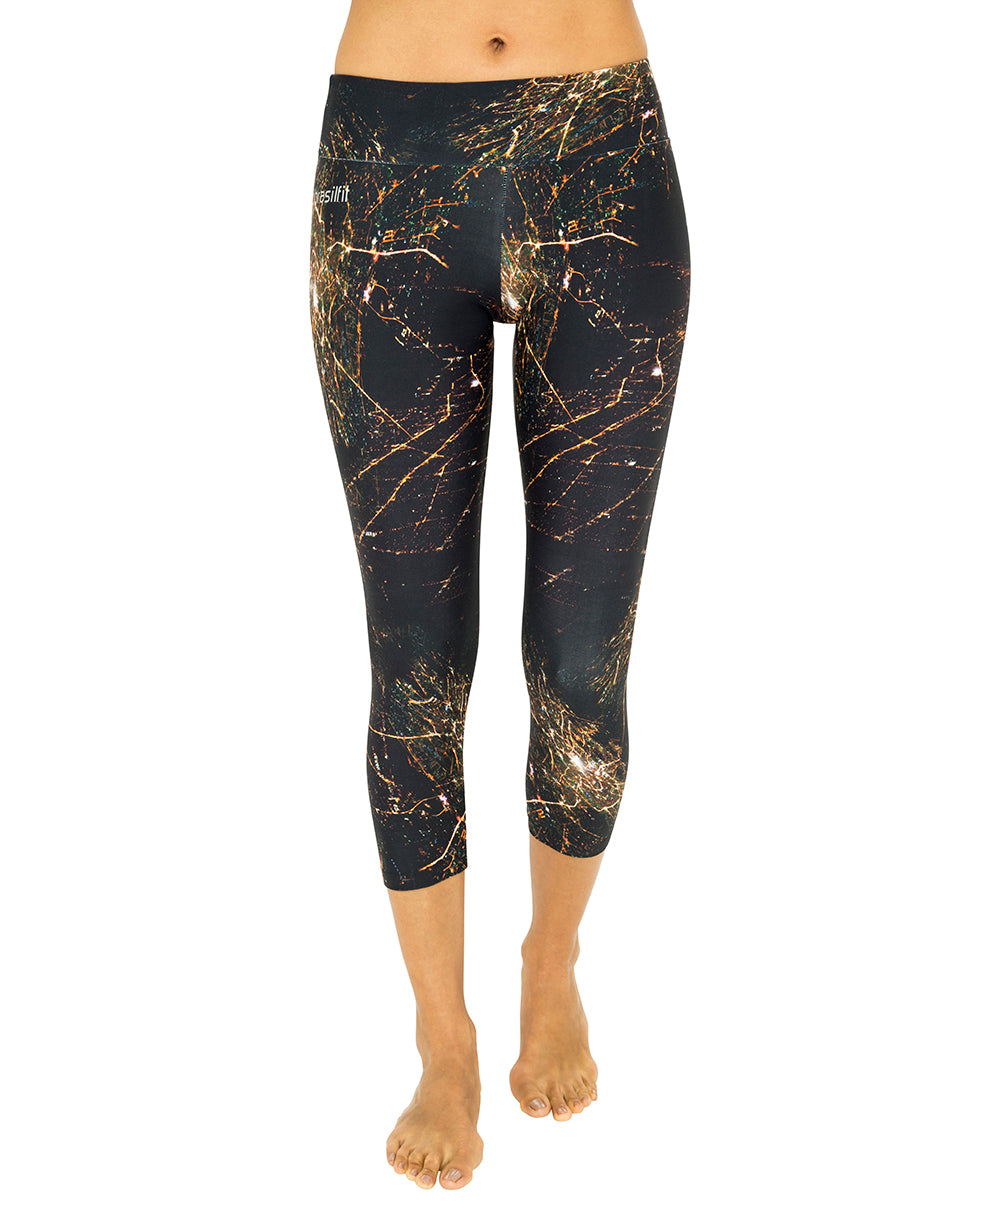 Cosmic Karma Full Length Legging